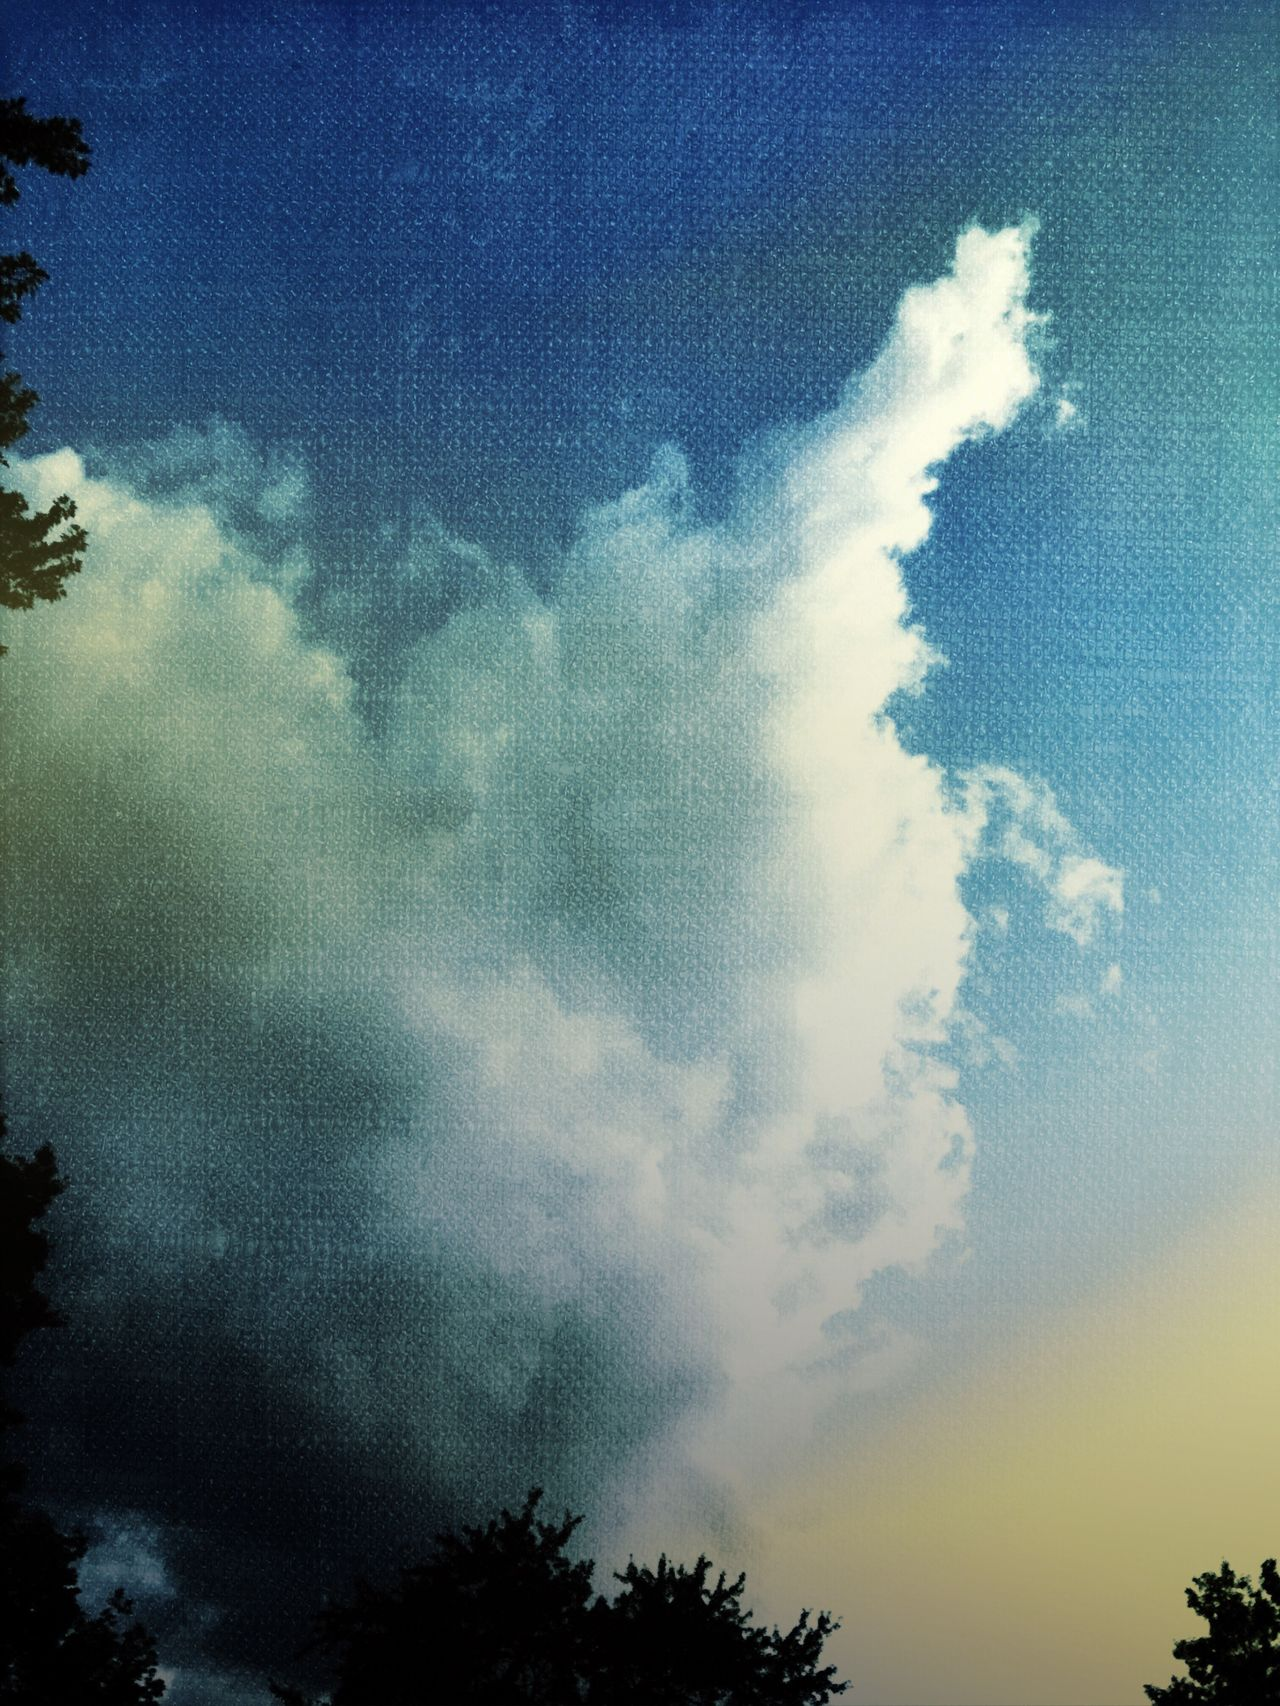 Blue sky's Sky Cloud - Sky Nature Tree Tranquility No People Outdoors Camerafilters Dramatic Sky Iphonephotography Colorphotography Sky And Clouds